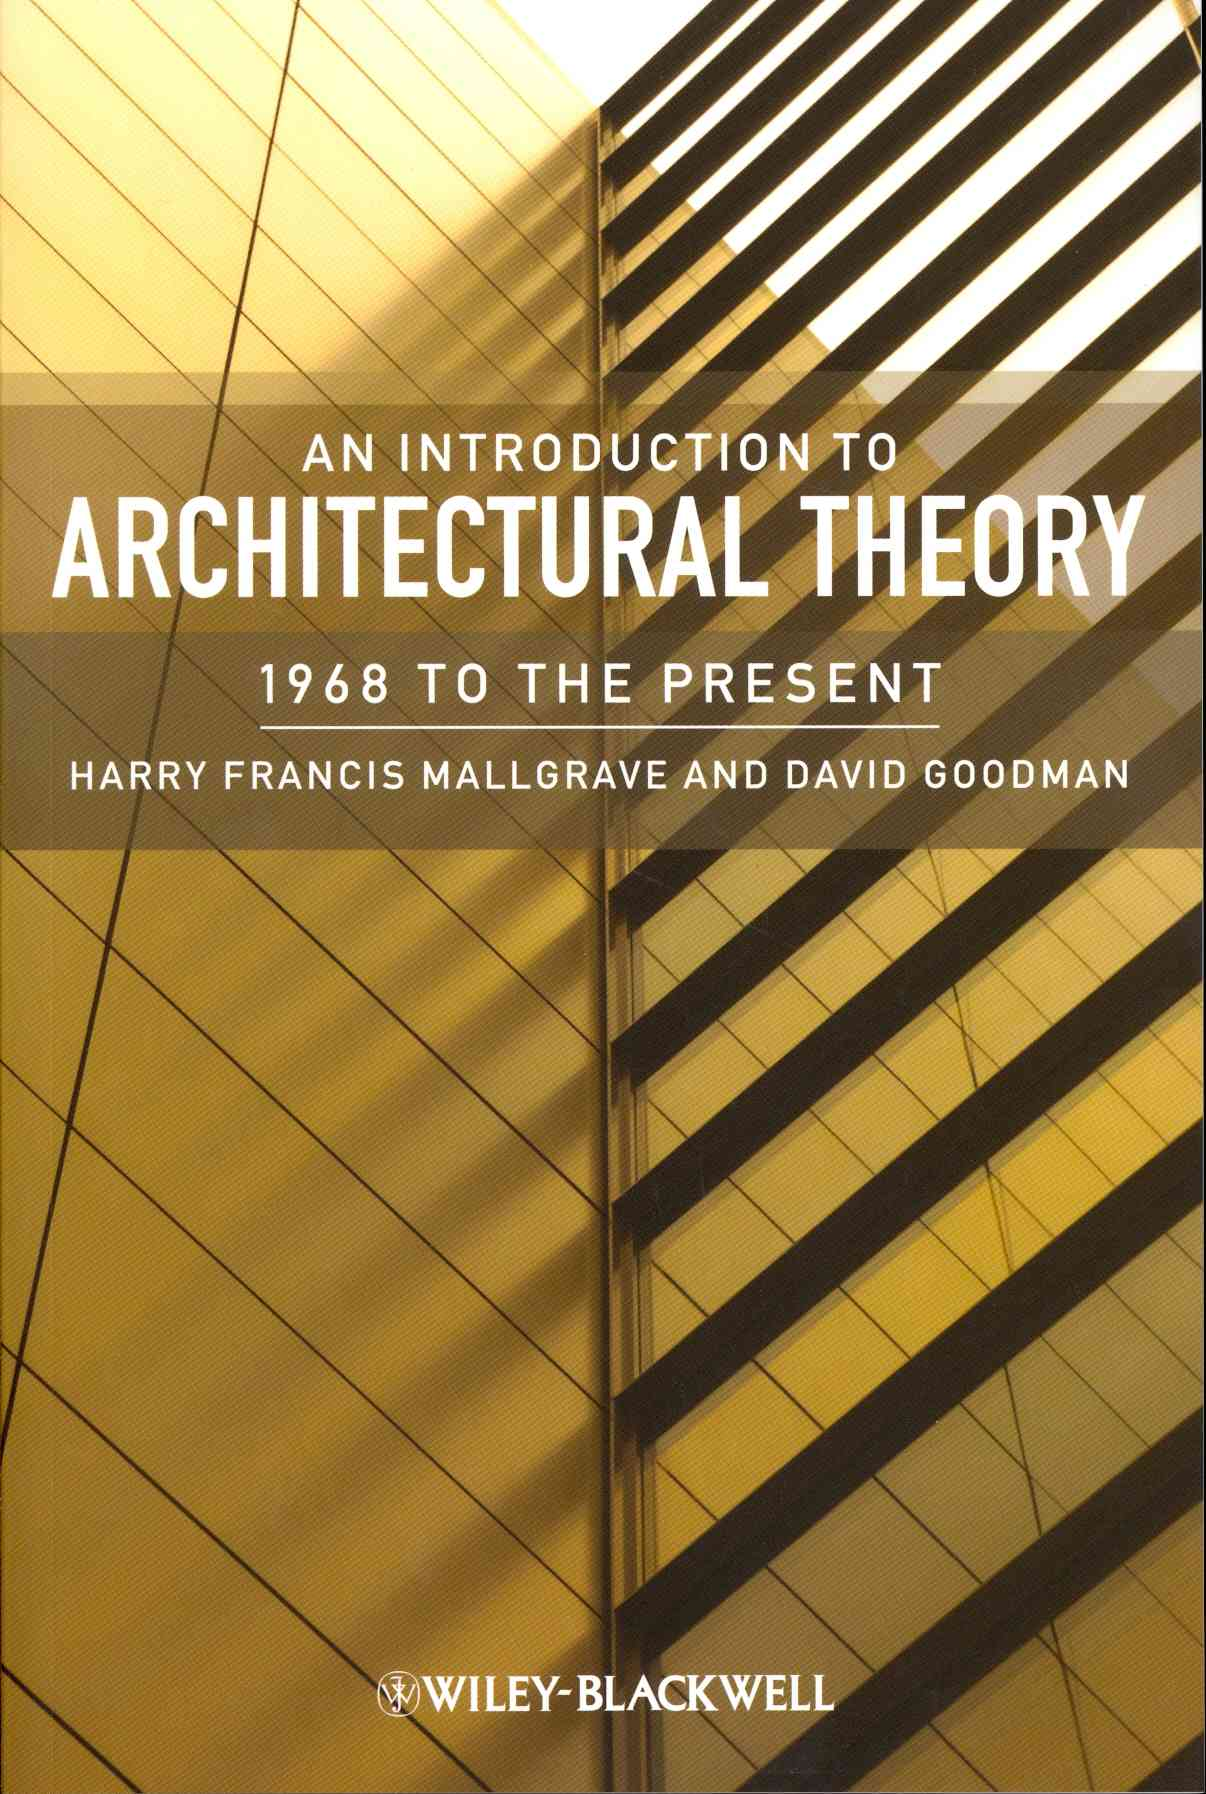 An Introduction to Architectural Theory By Mallgrave, Harry Francis/ Goodman, David